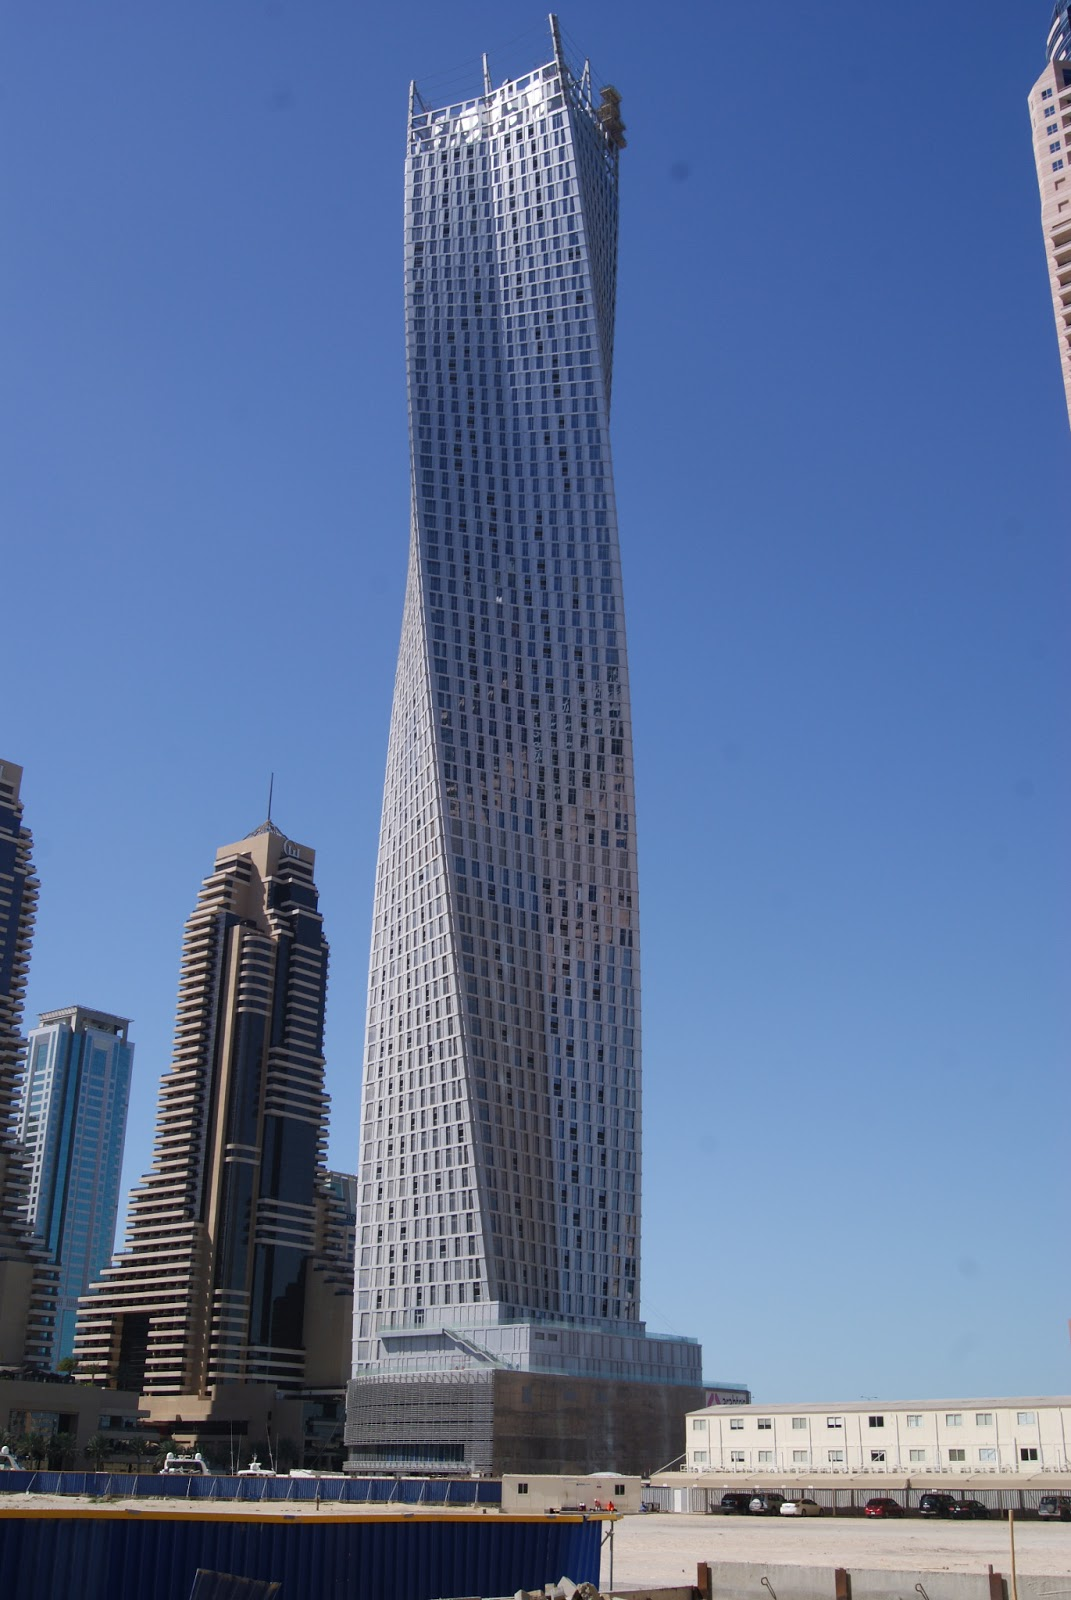 Laticrete conversations infinity tower Dubai buildings